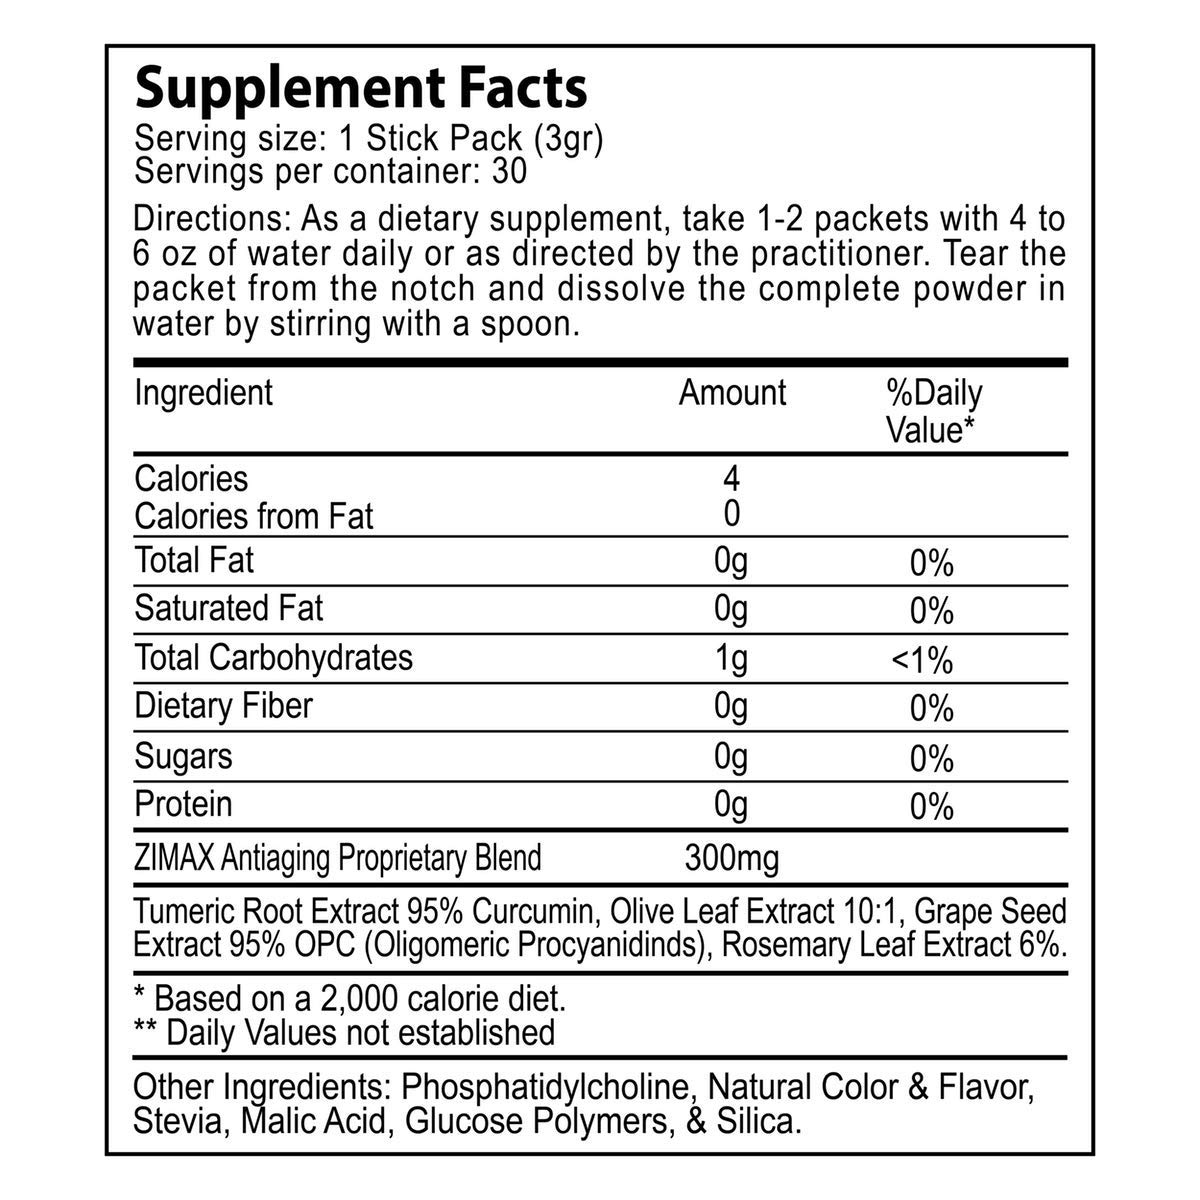 Zimax Super Antioxidant 100% Natural High Absorption Curcumin, Rosemary Extract, Grape Seed Extract, Olive Leaf Extract ORAC 3,451,770 (Canister) by Paleolf (Image #3)